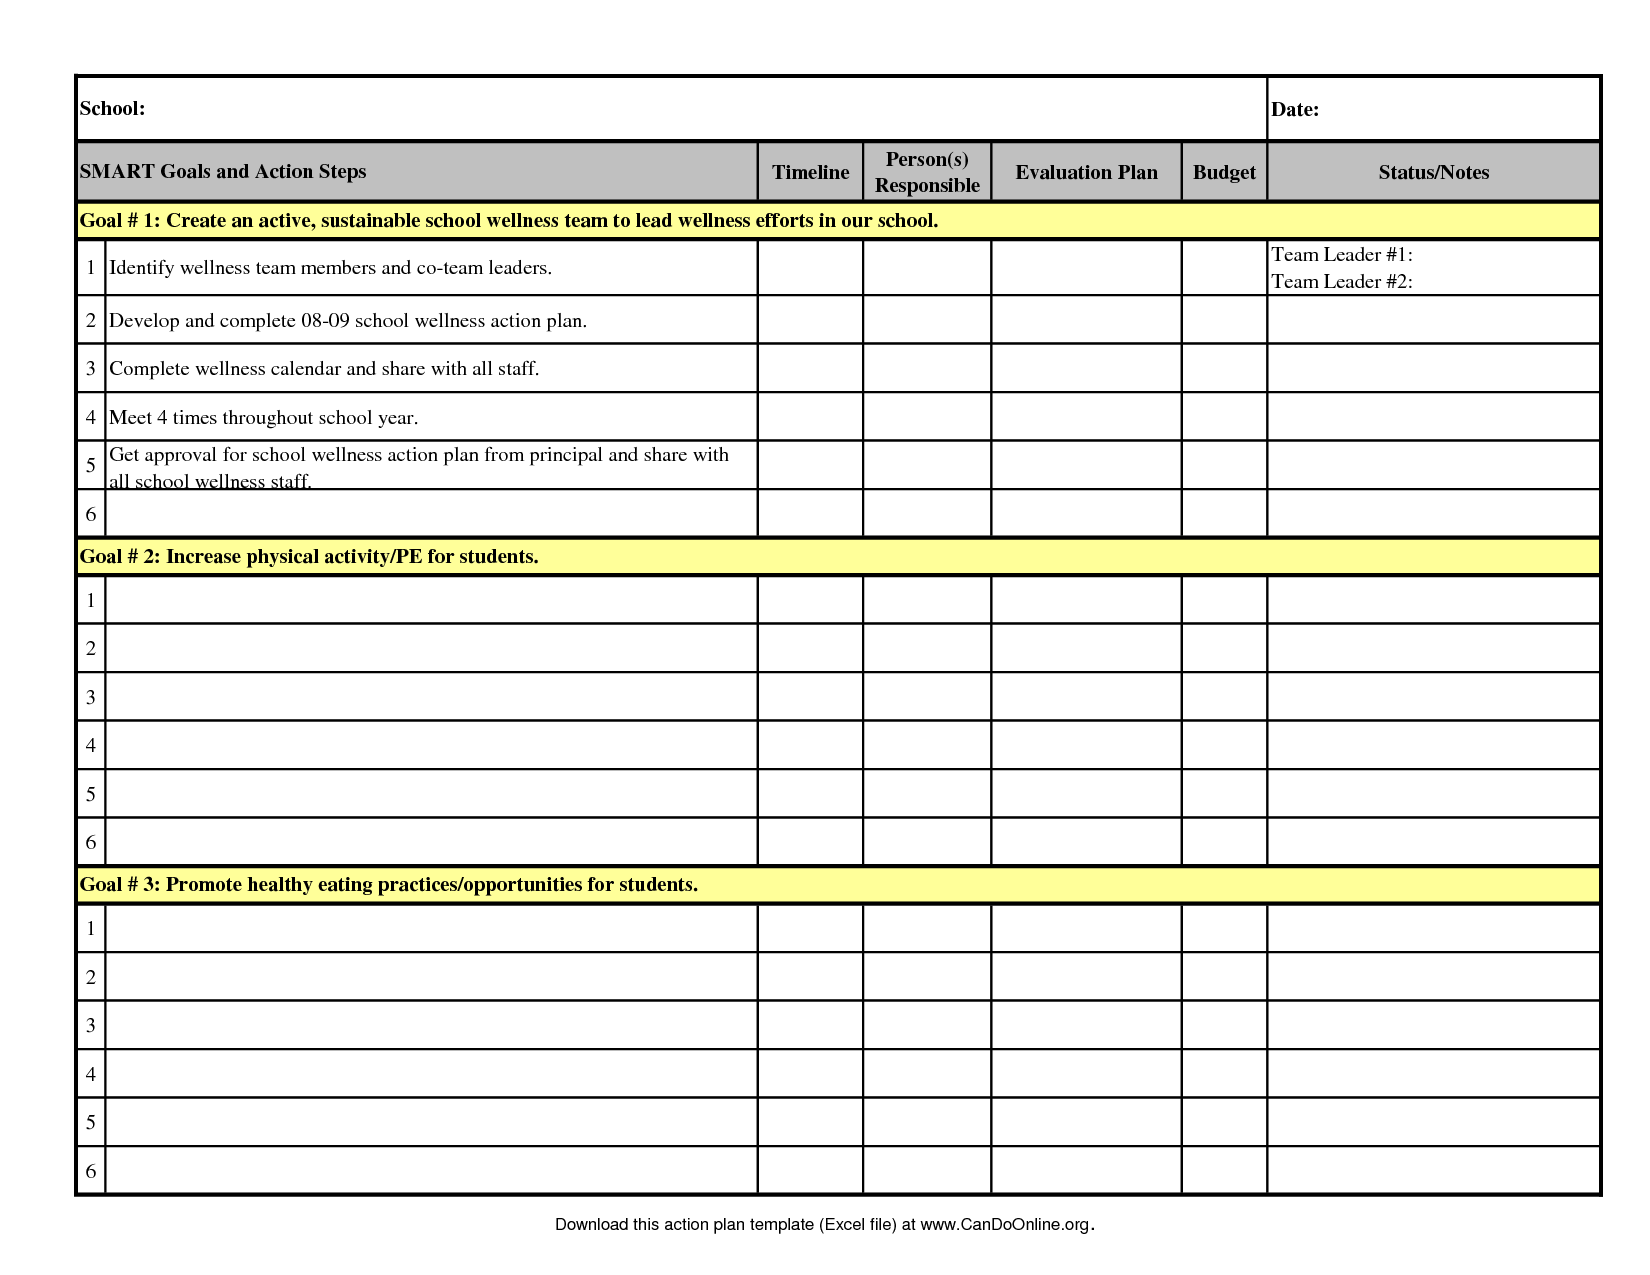 Project Manager Spreadsheet and Action Plan Template 2008 09 Excel T68noboj Vision Goals